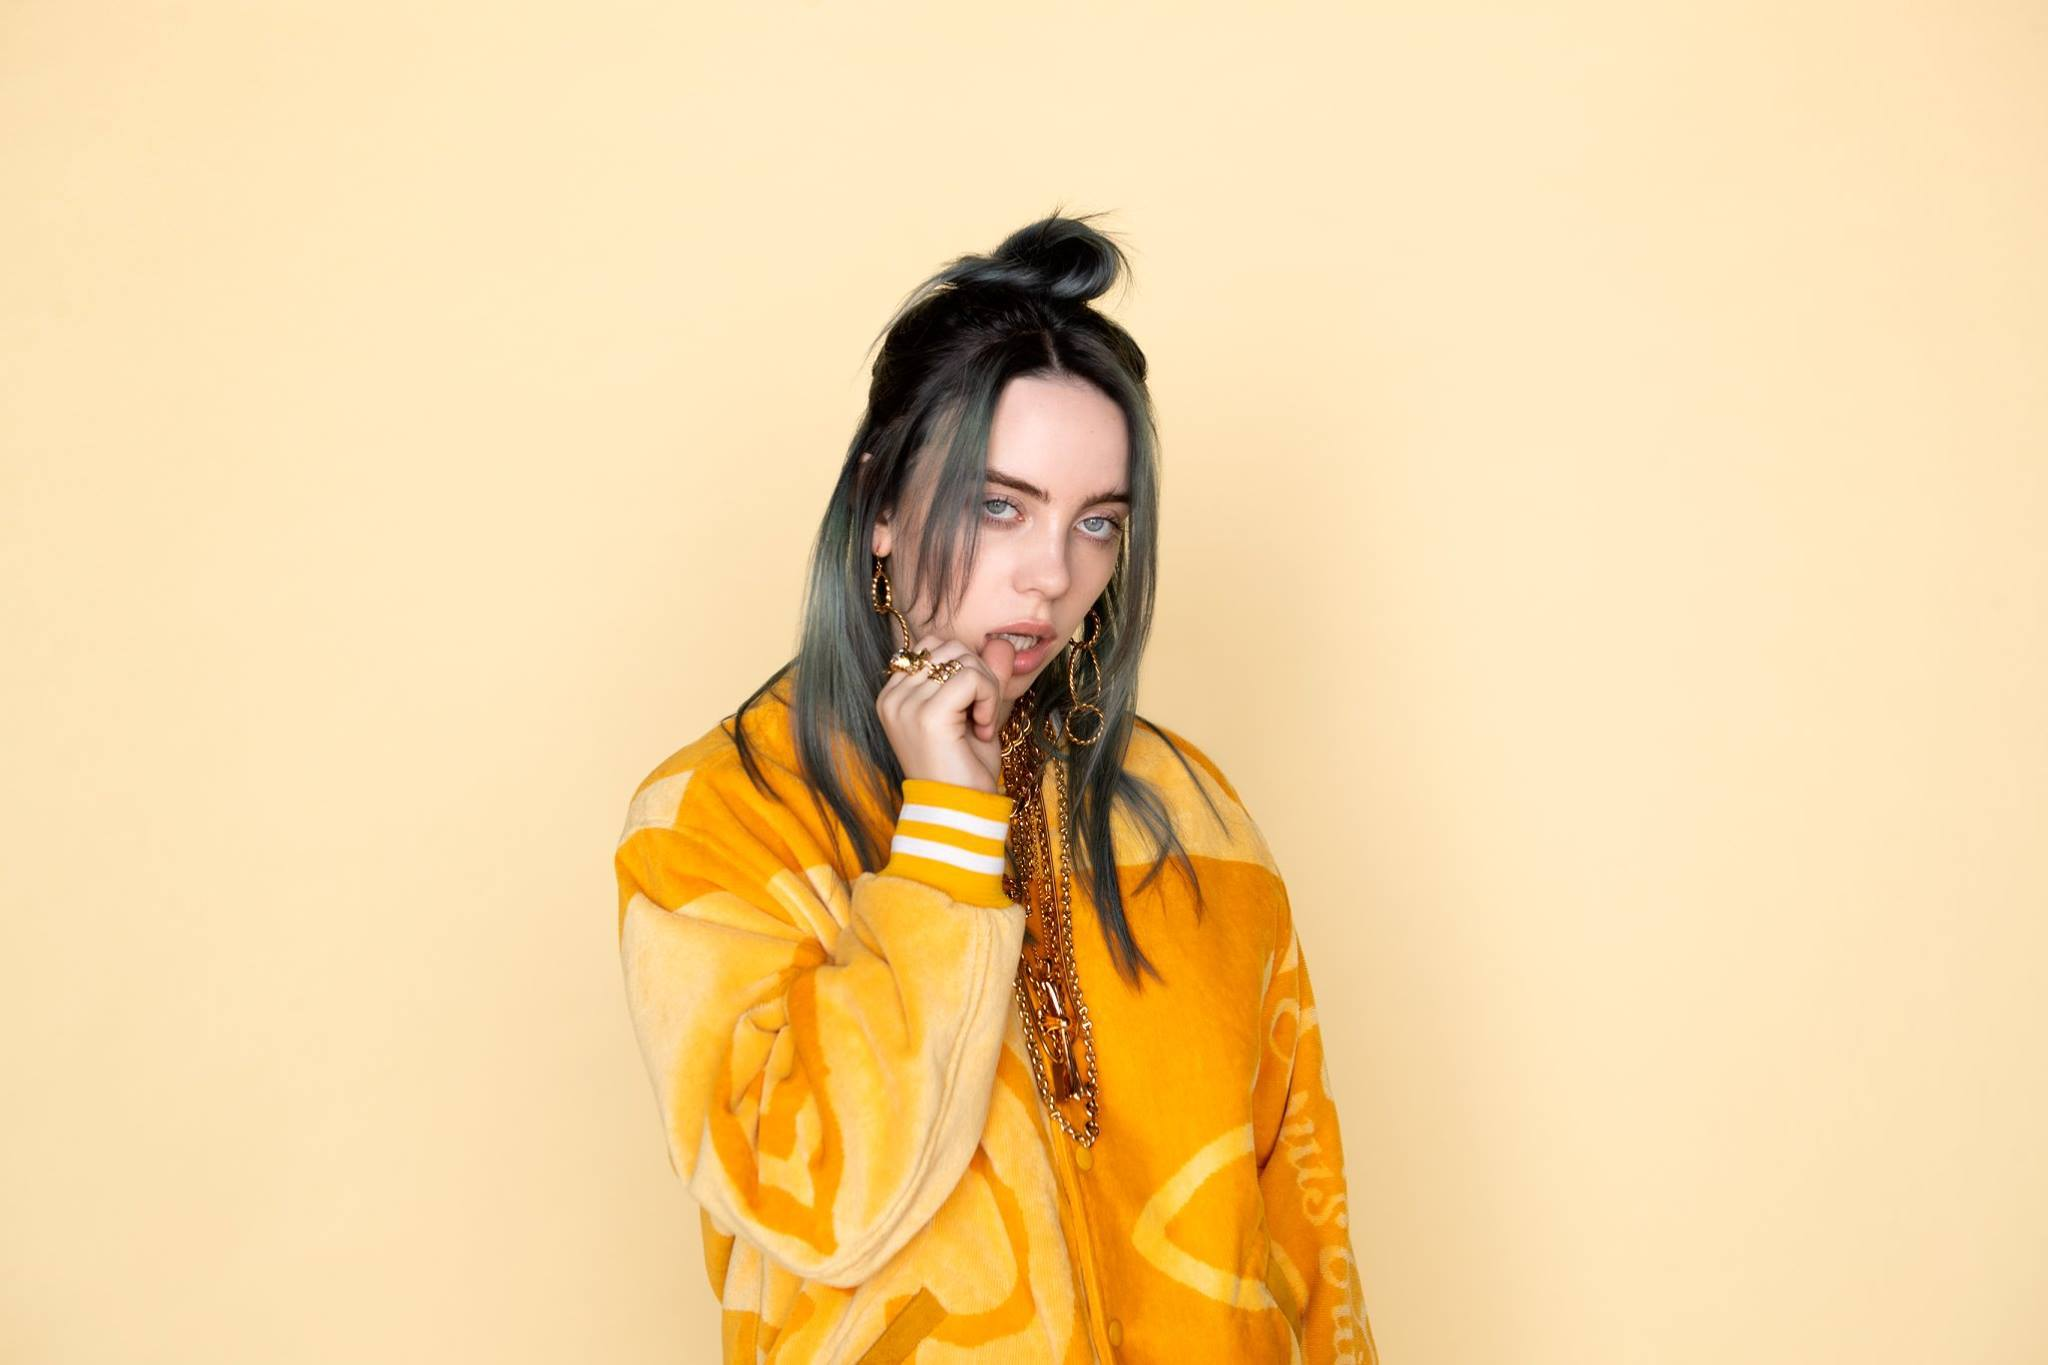 Billie Eilish, o novo fenómeno da pop, regressa para o NOS Alive